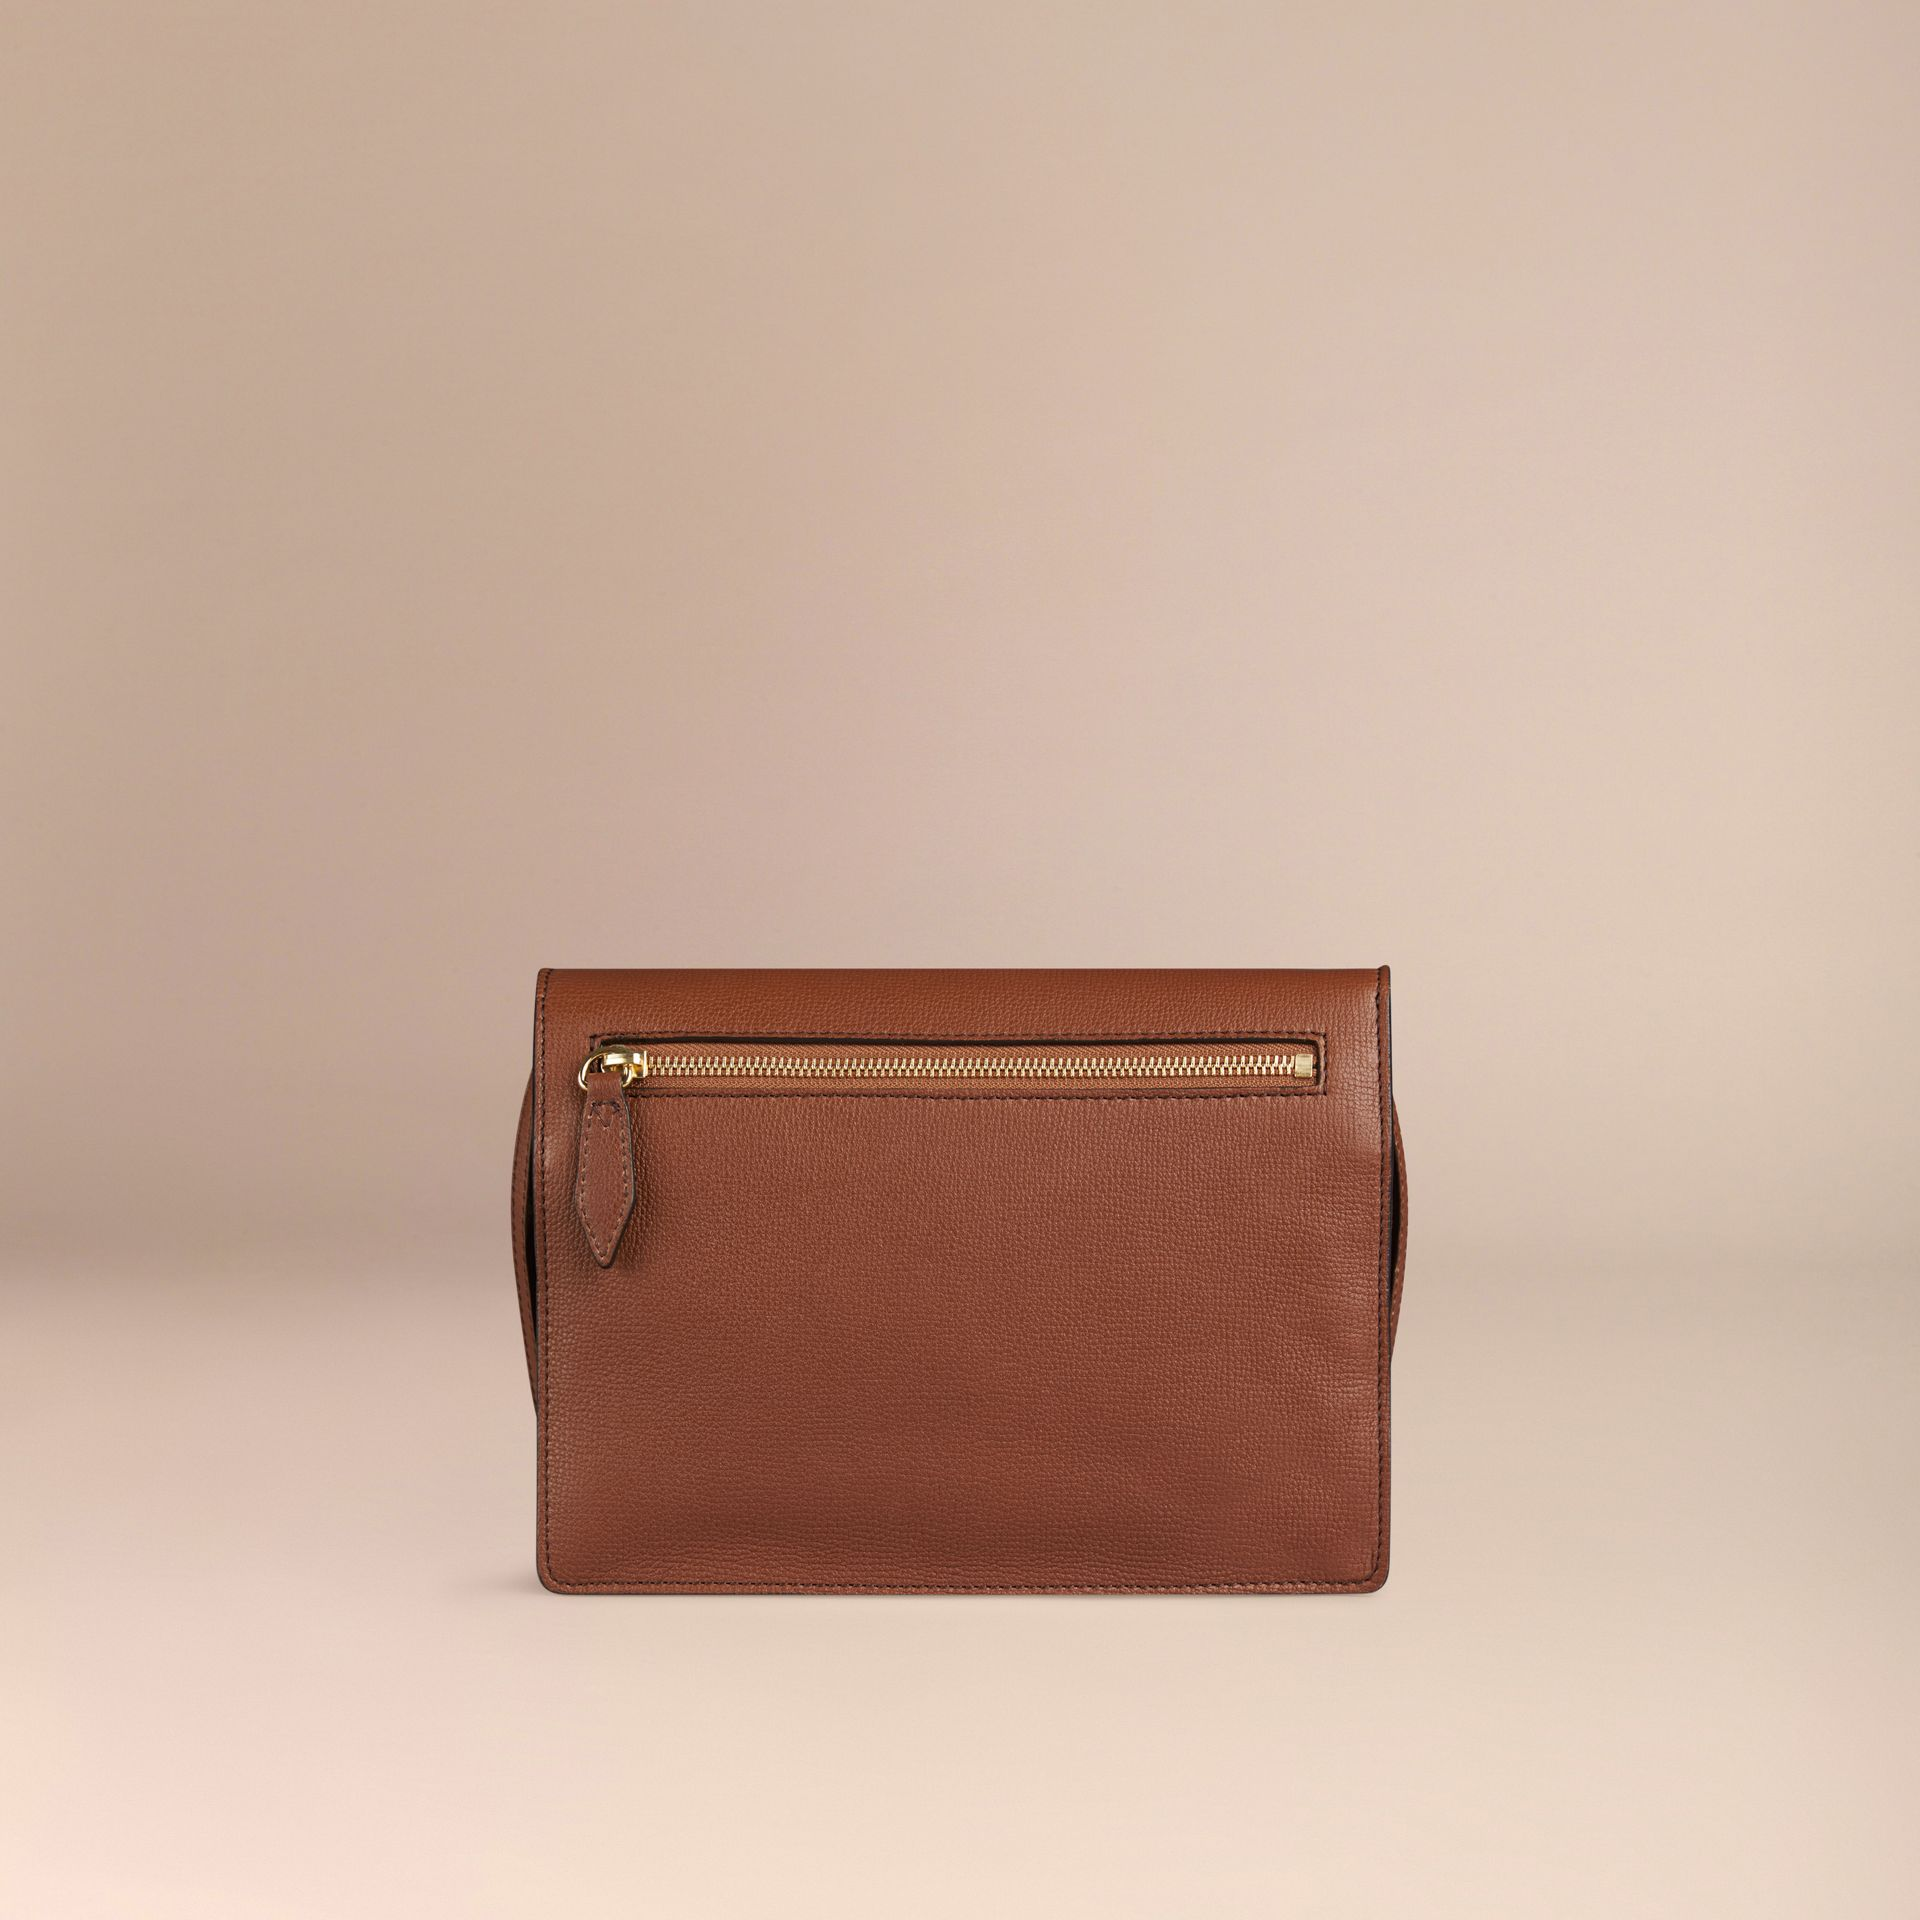 Small Leather and House Check Crossbody Bag in Tan - Women | Burberry - gallery image 3